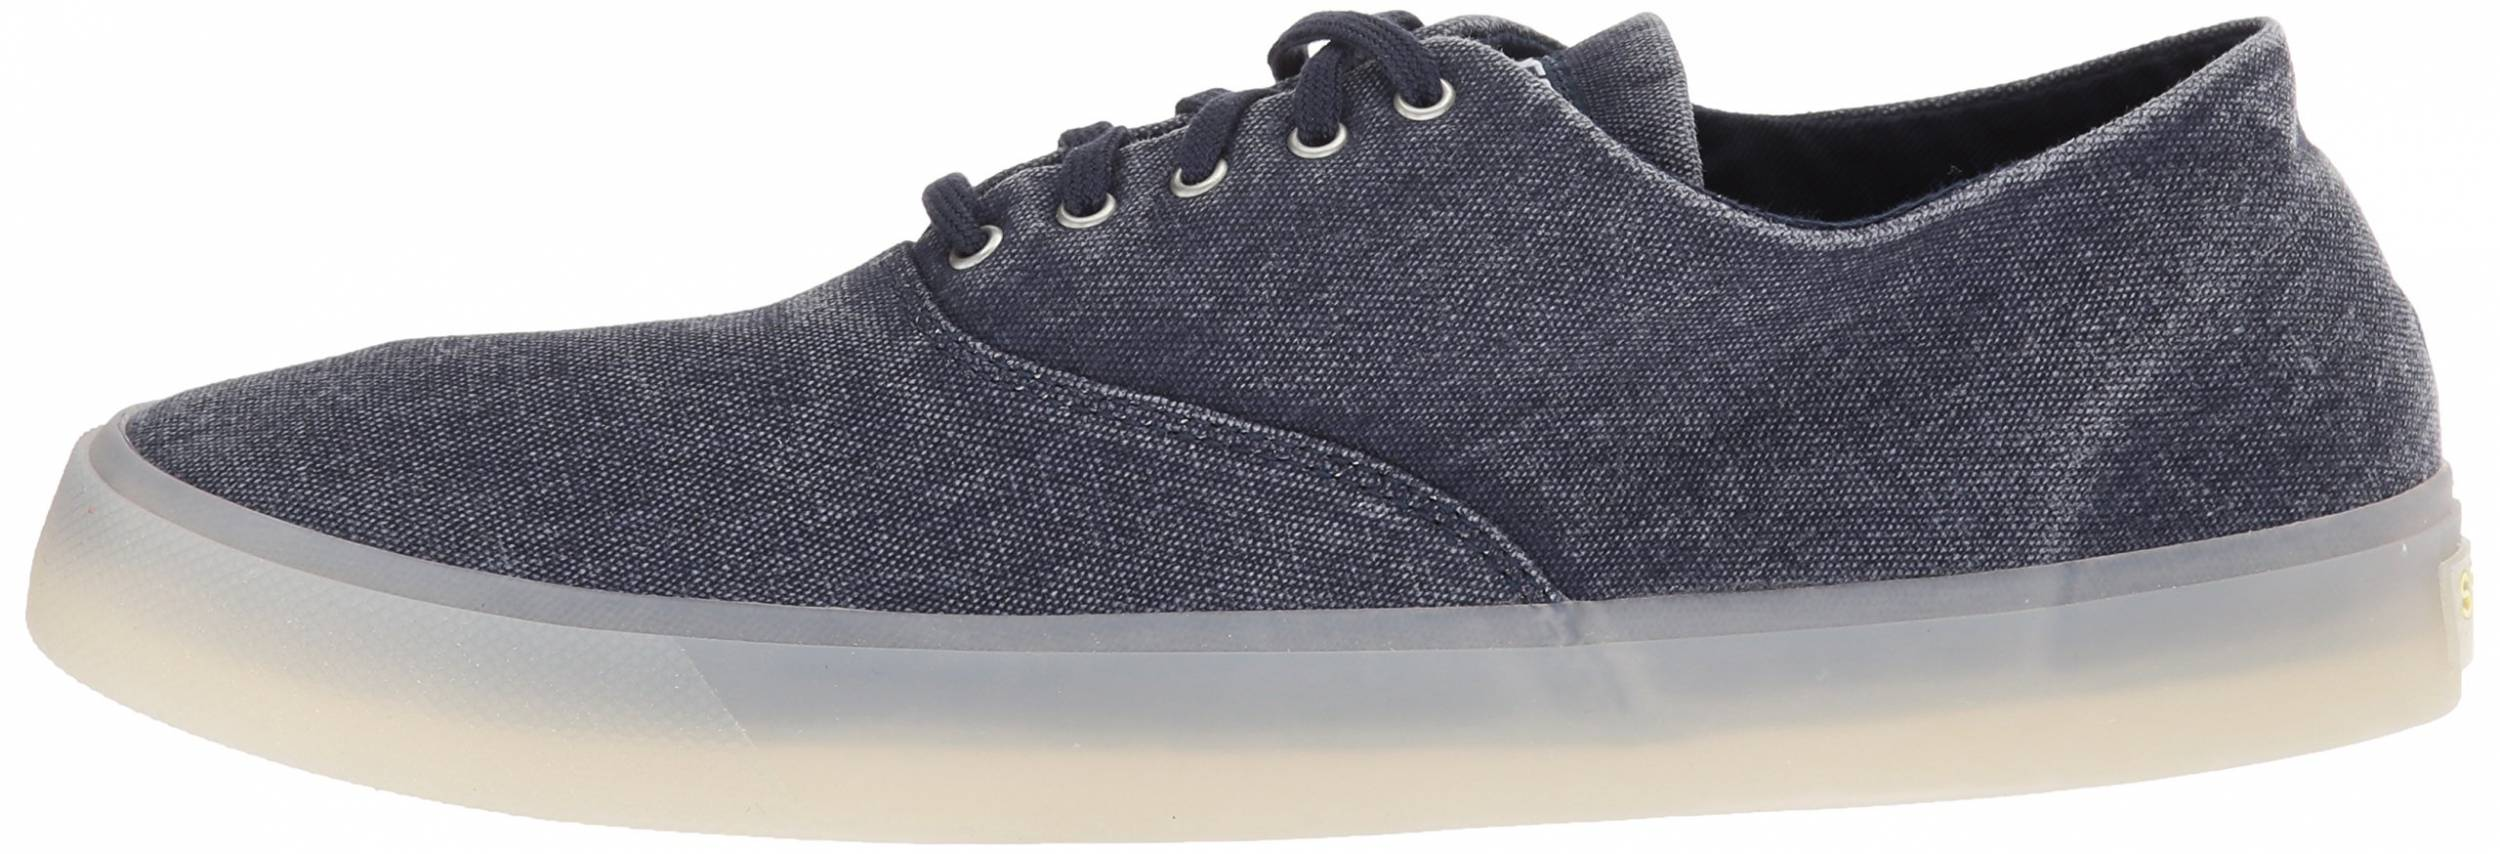 Sperry Captain's CVO Drink